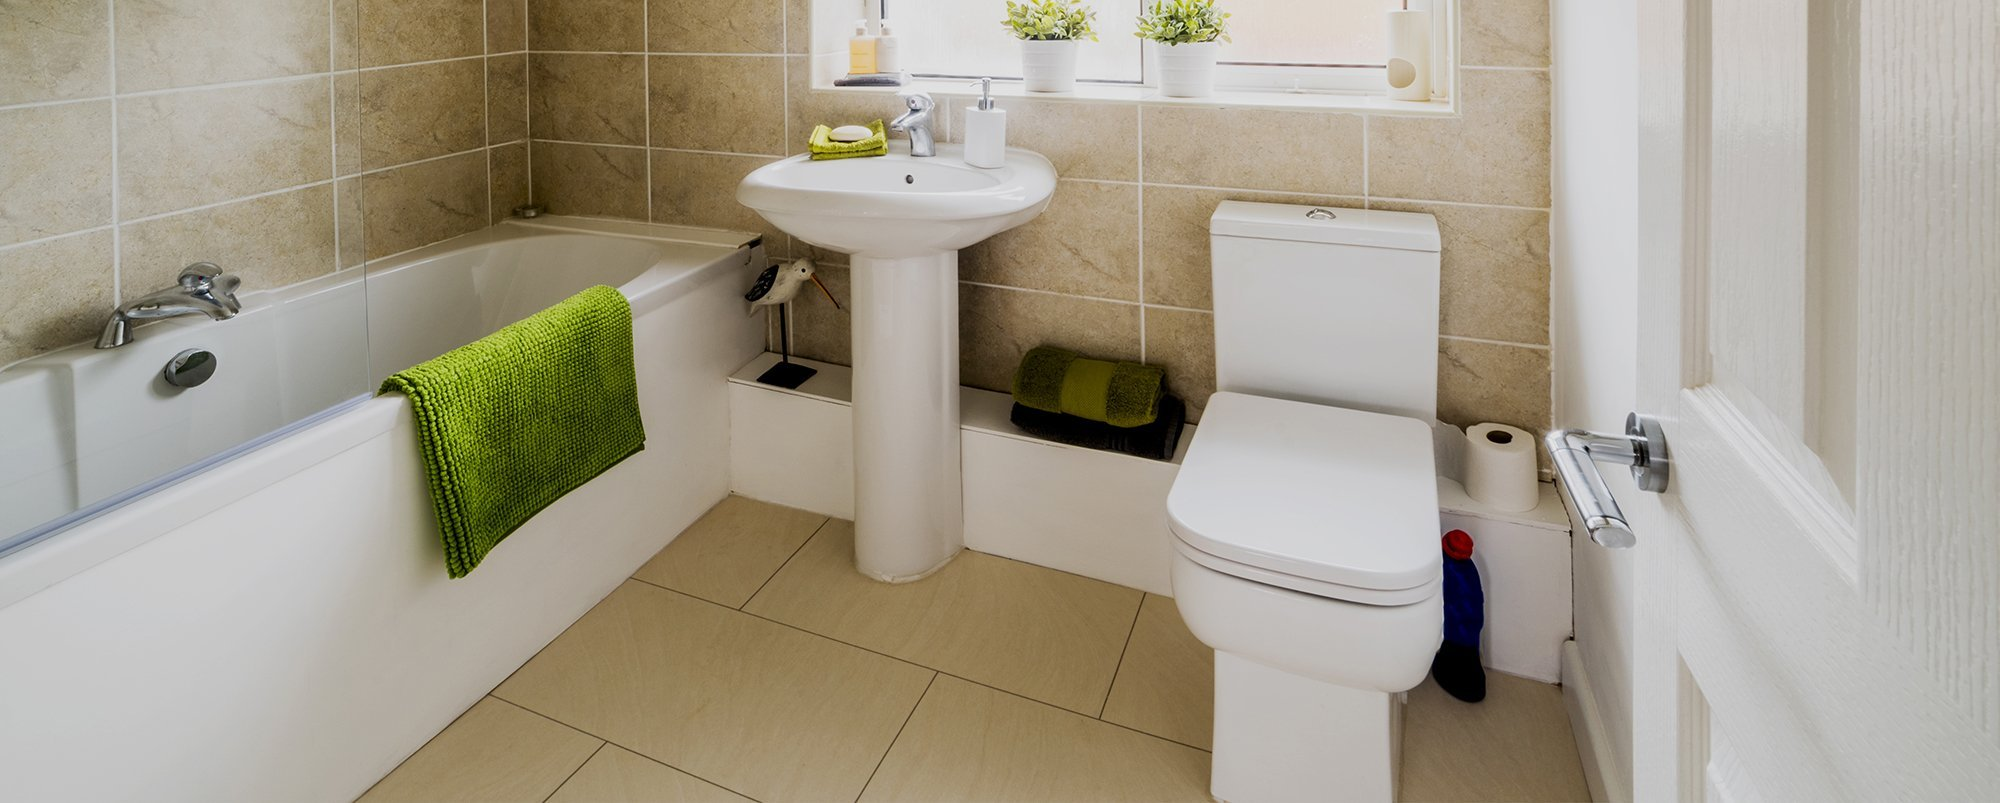 Beautiful Bathrooms Letchworth bathroom discount centres - bathroom fittings store, bedford